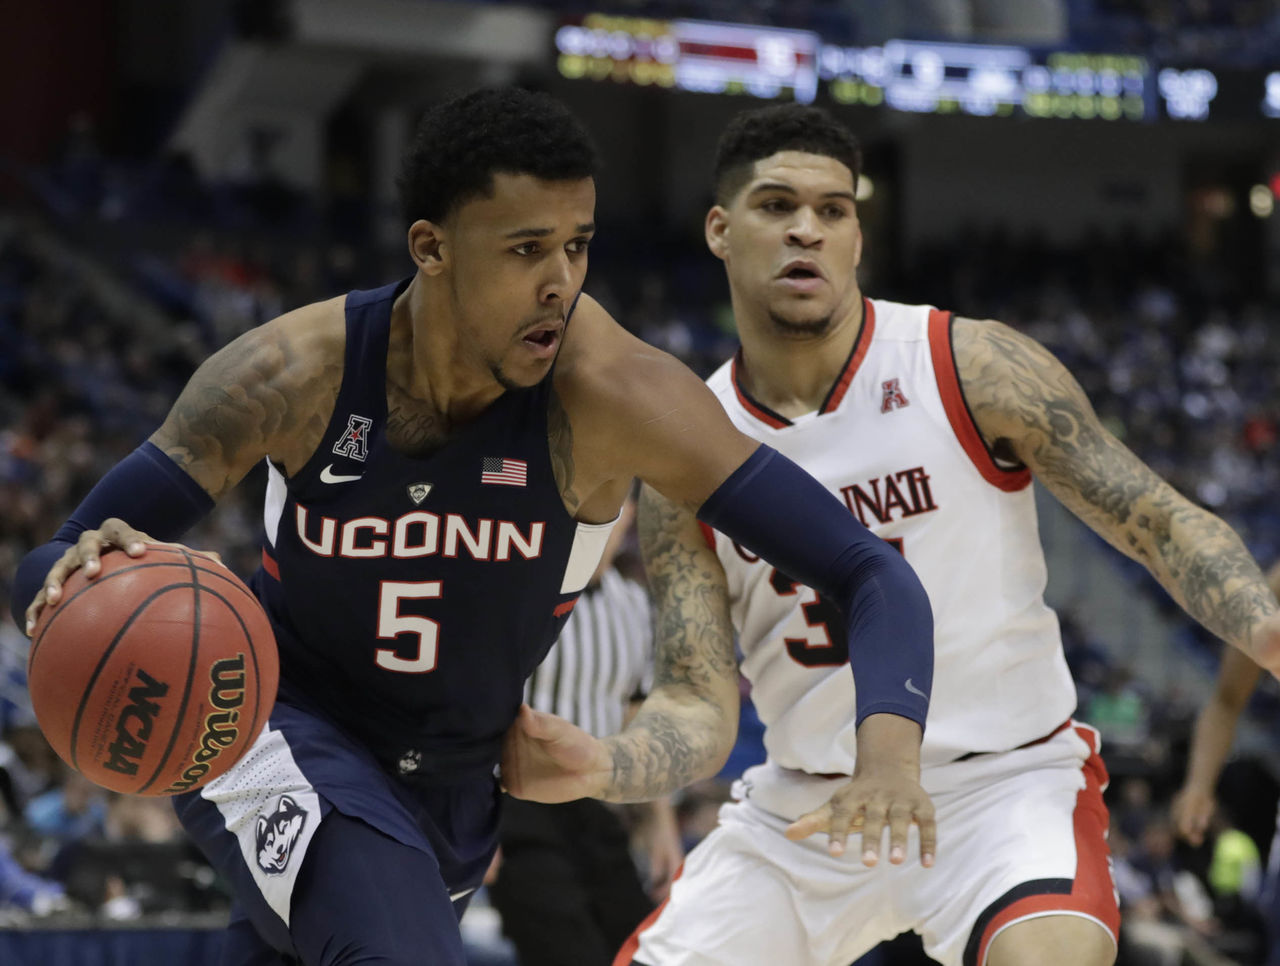 Cropped 2017 03 12t001213z 1856991731 nocid rtrmadp 3 ncaa basketball aac conference tournament connecticut vs cincinnati